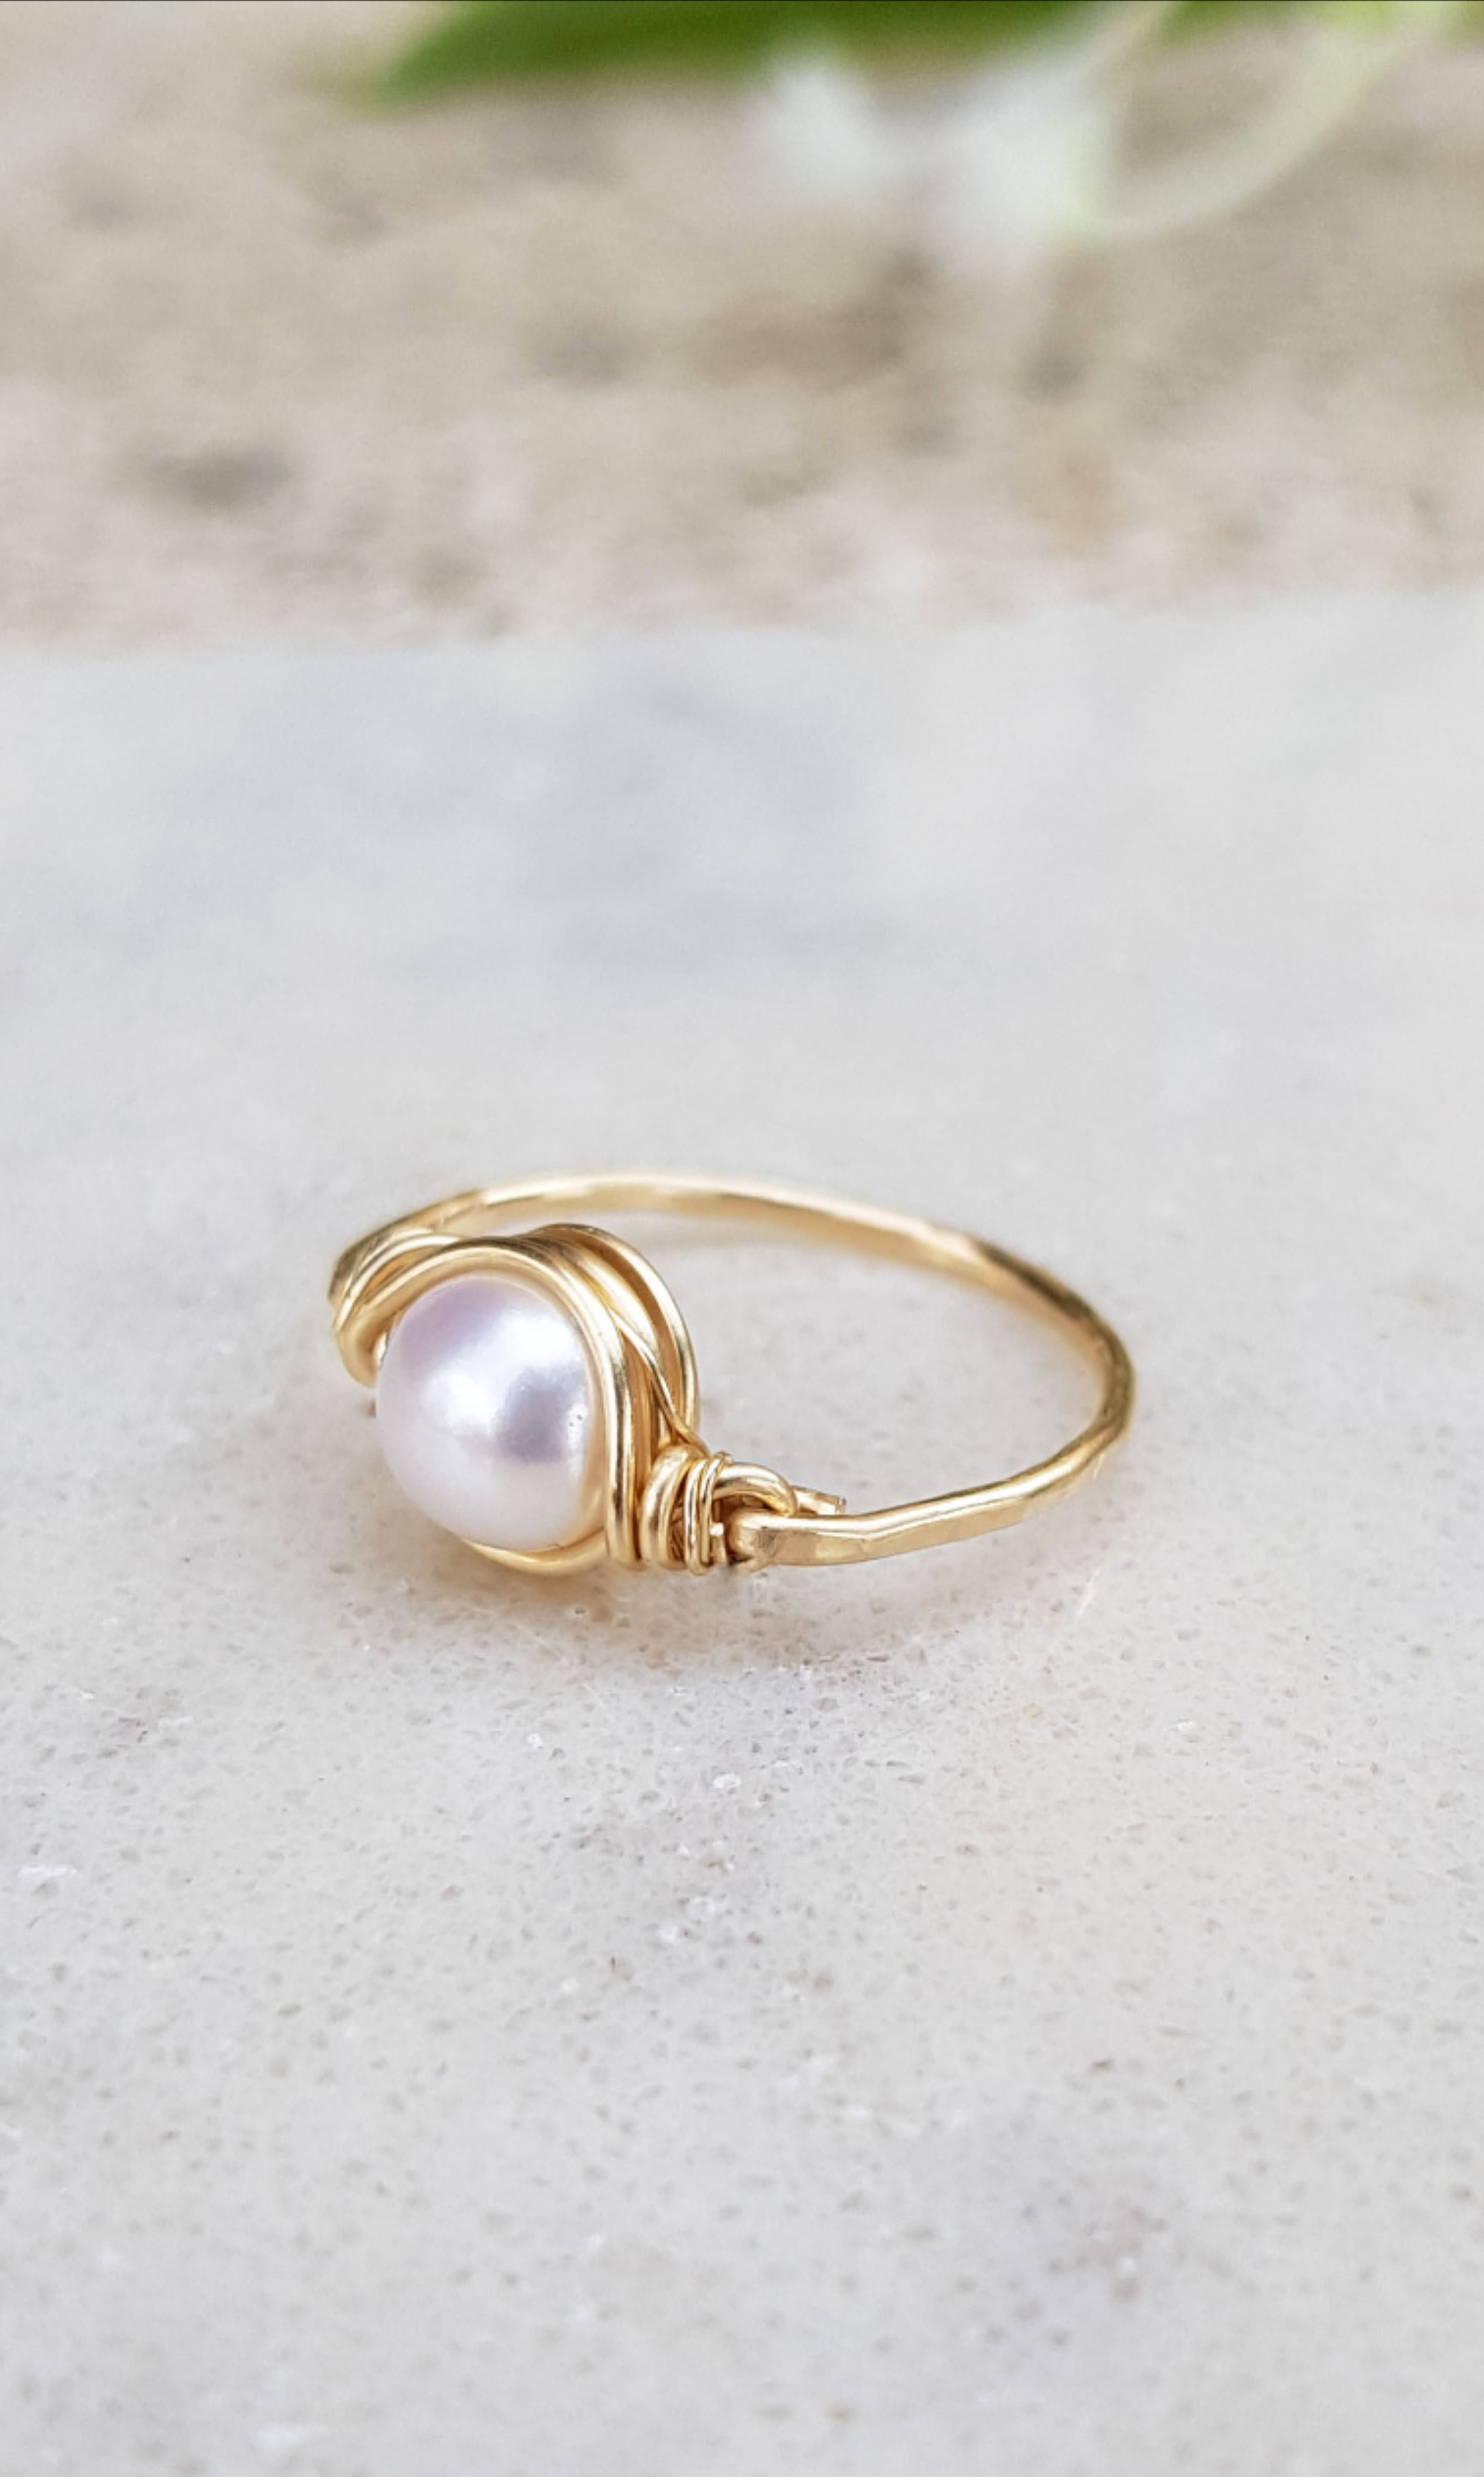 June Birthstone Vintage Ring Handmade Ring Pear Ring Pear Stone Ring Fresh Water Pearl Gift For Her Gemstone Ring Bohemian Ring